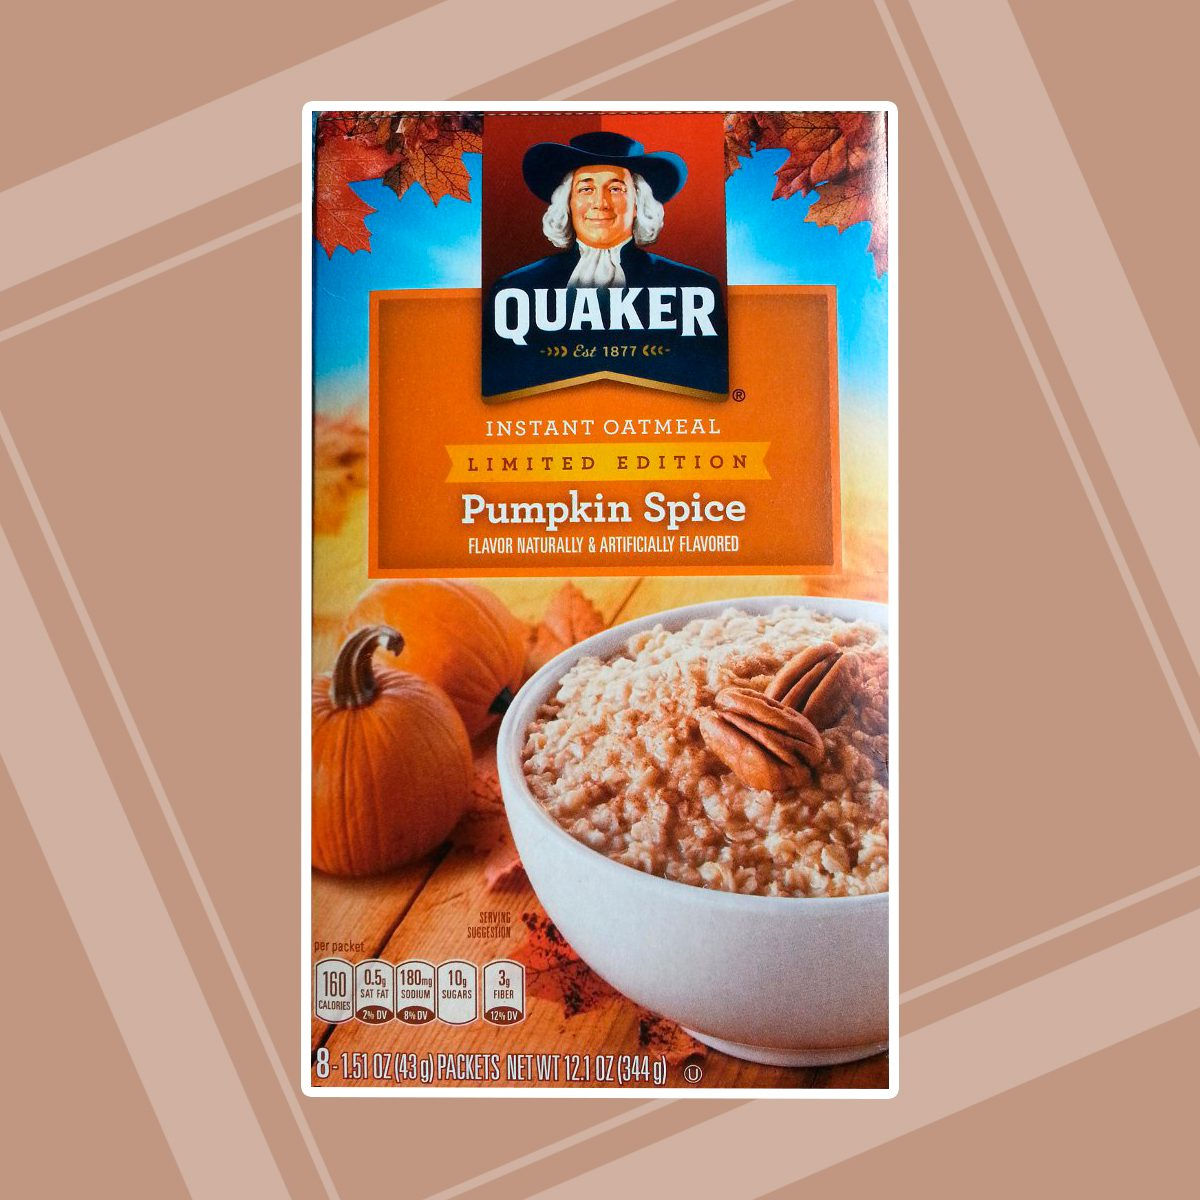 Quaker Instant Oatmeal Limited Edition Pumpkin Spice 8 ct